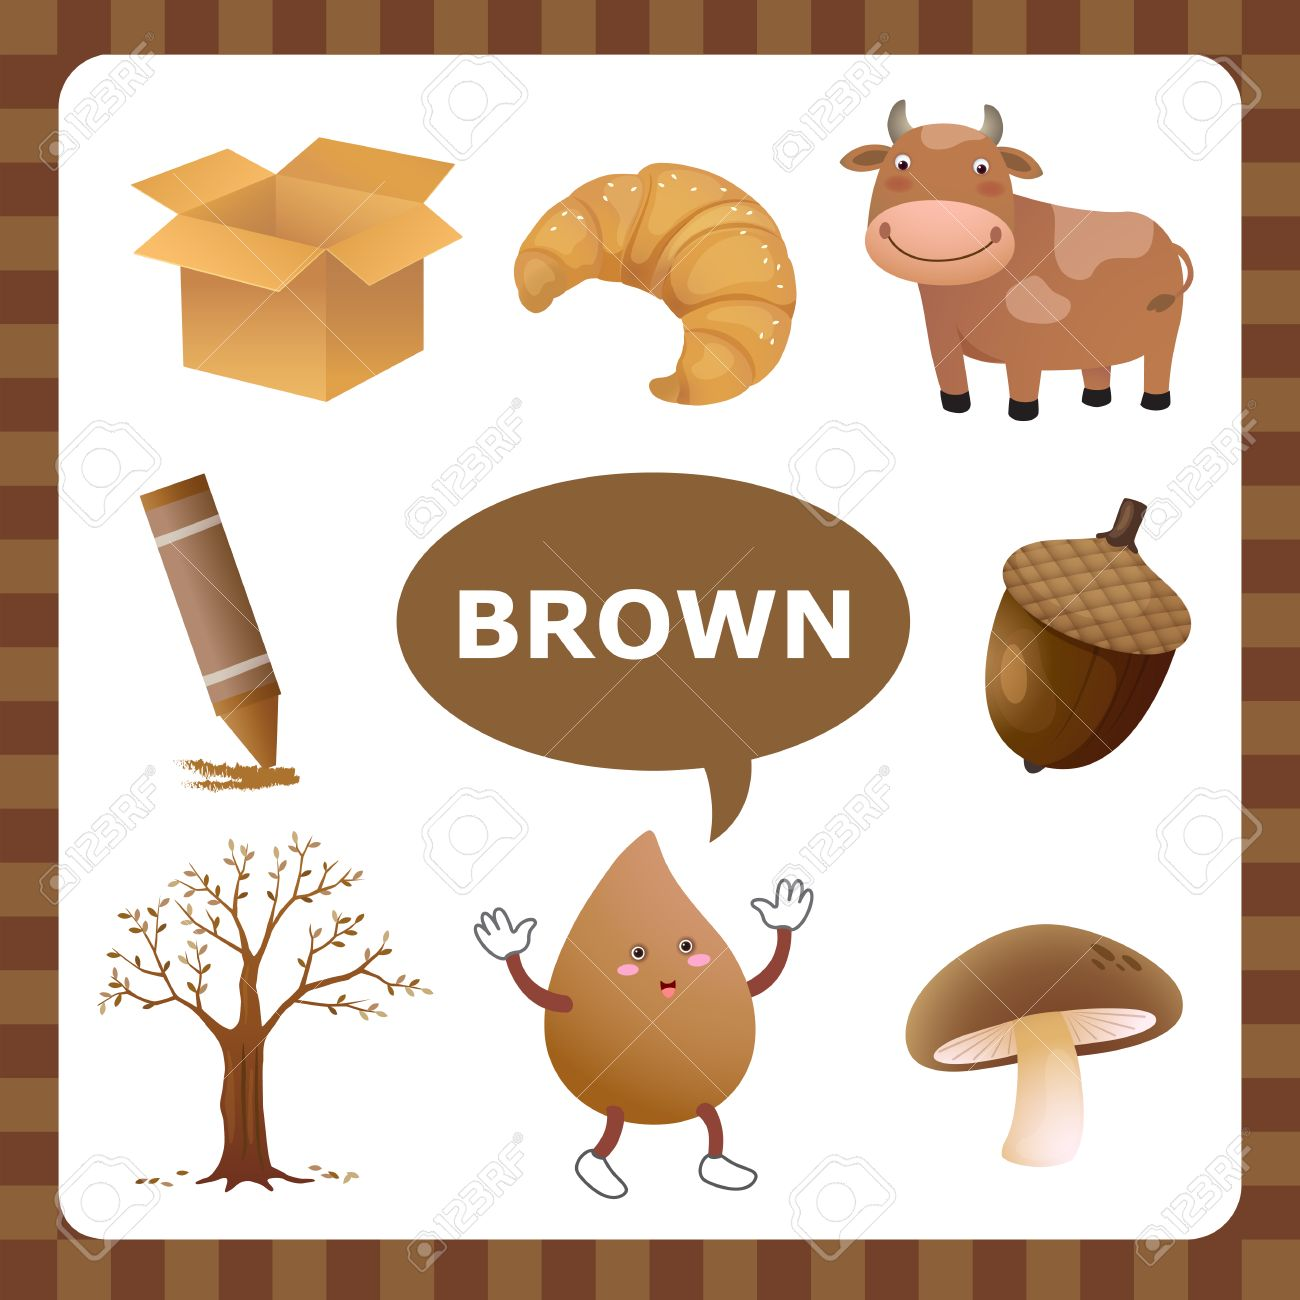 Brown Things Clipart.